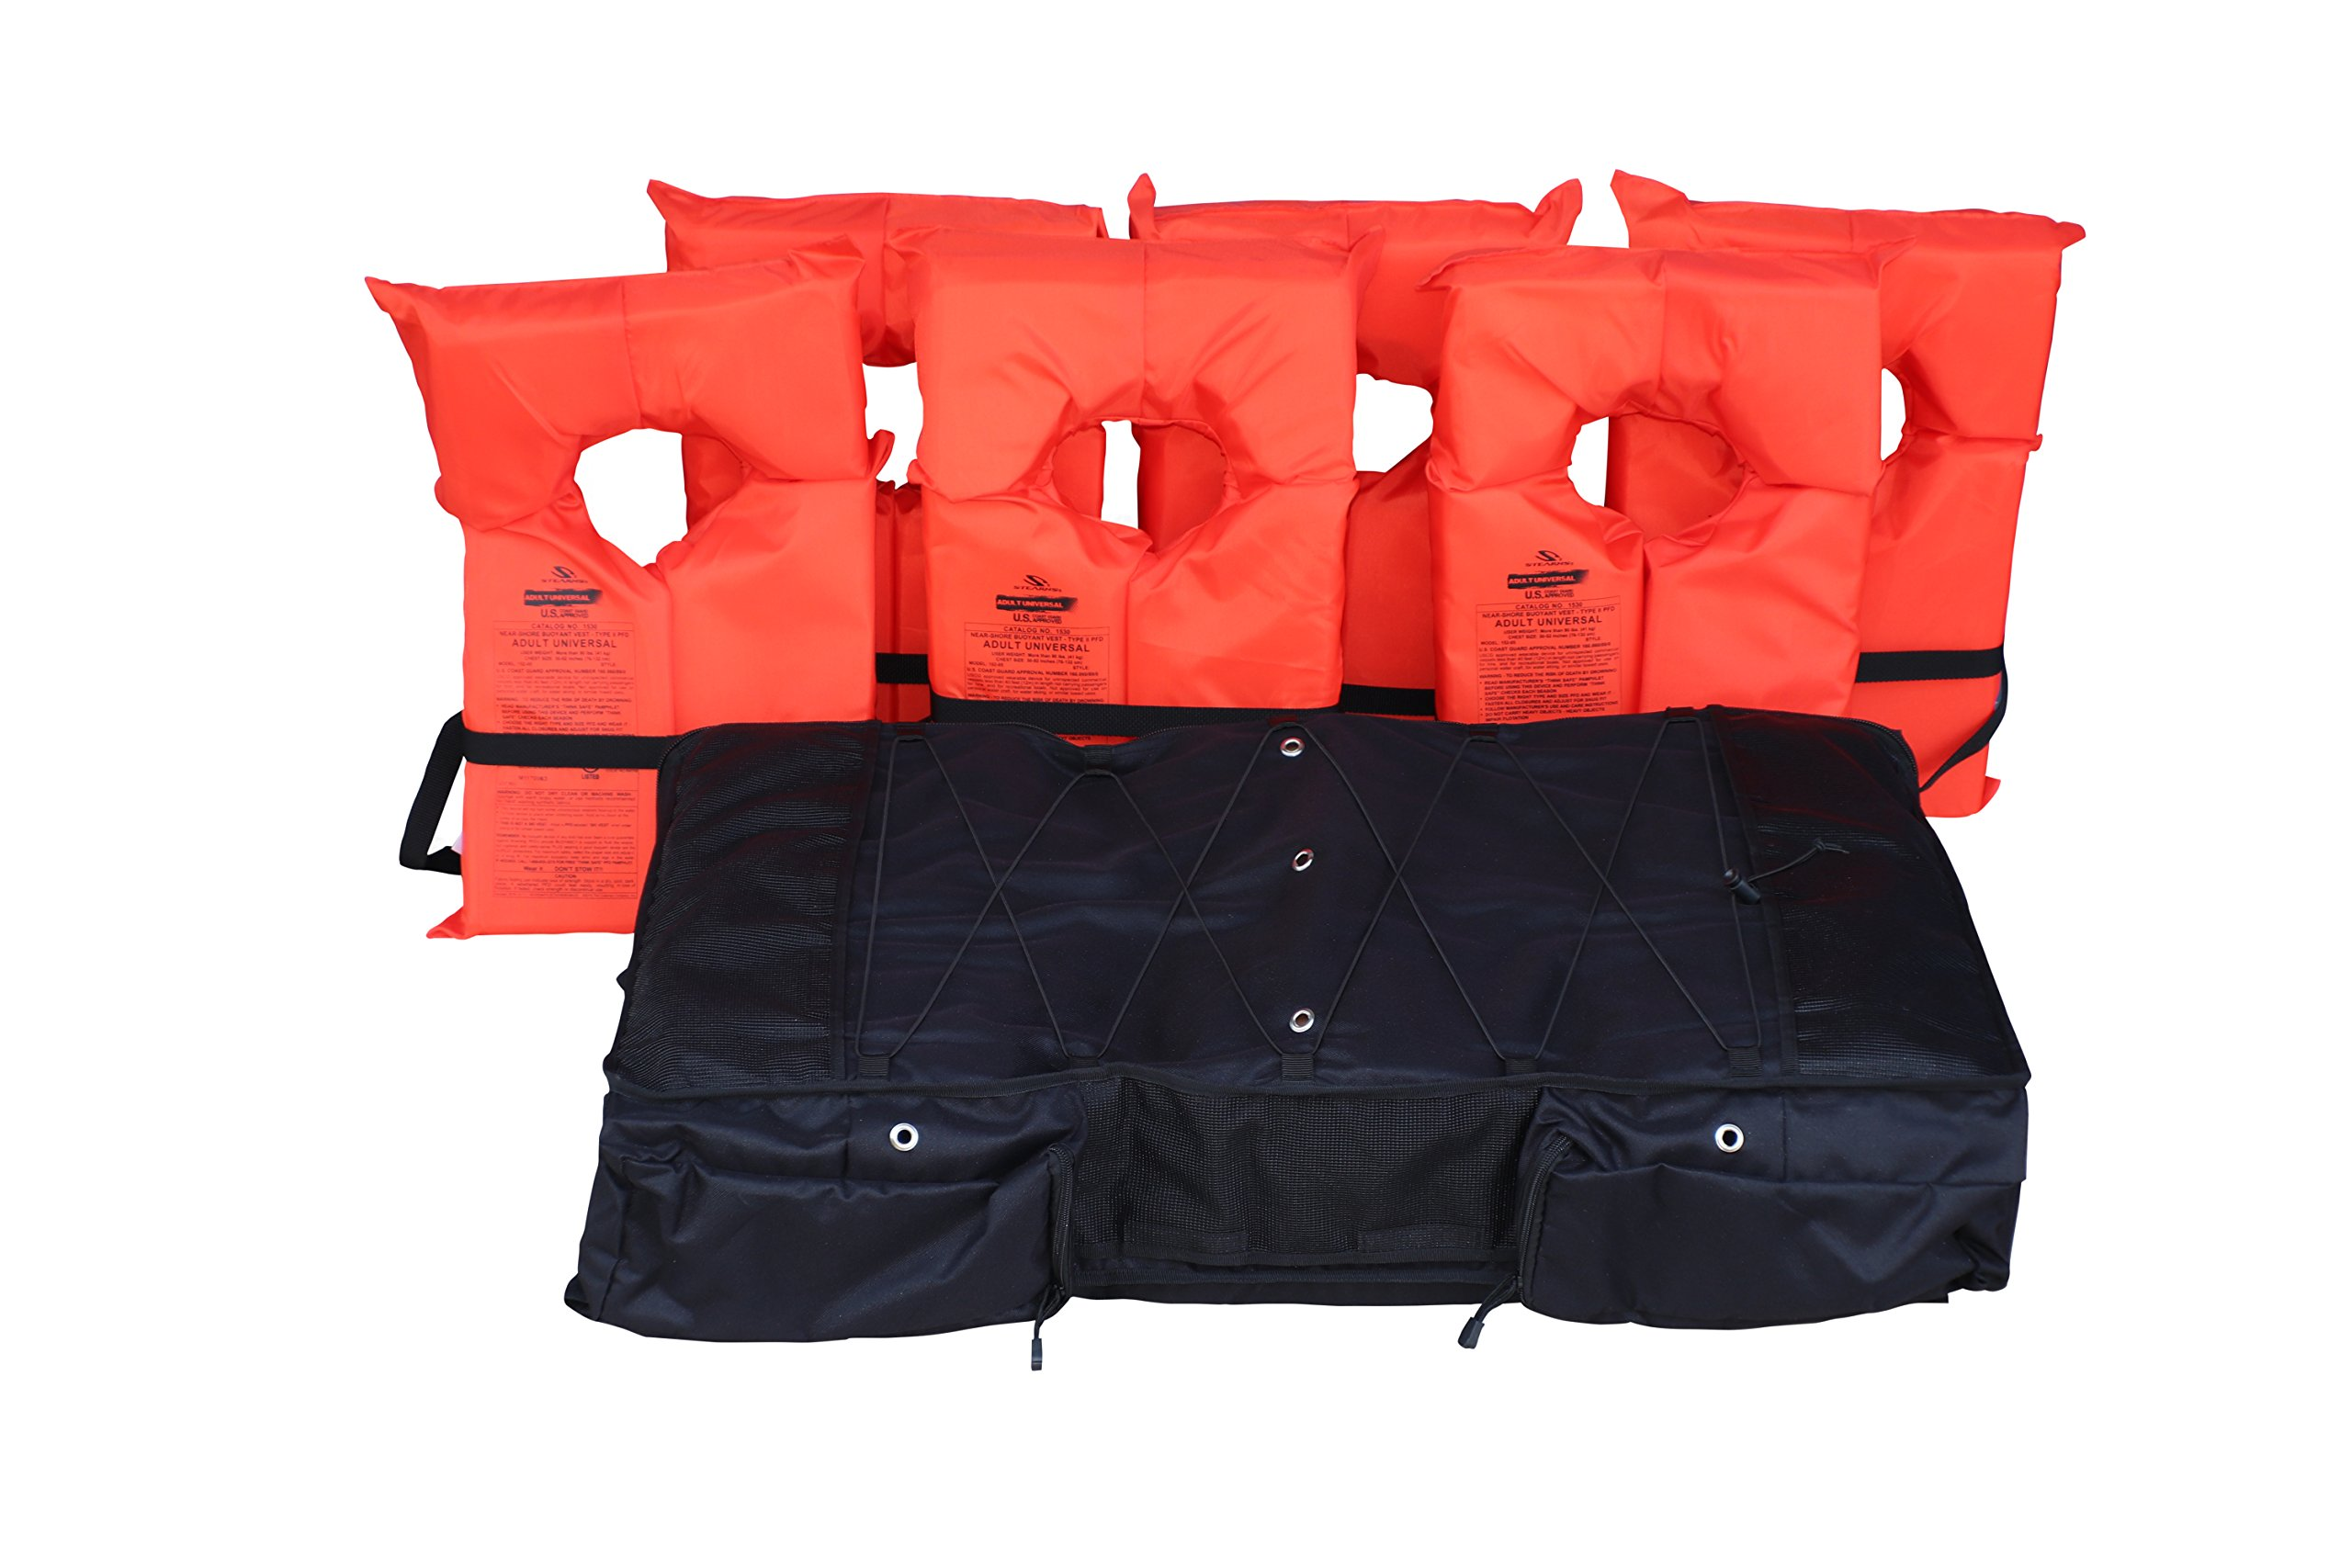 FISHMASTER MARINE TOWERS AND ACCESSORIES Boat Storage Bag for T-Tops and Bimini Tops stores 6 Type II PFD Lifejackets